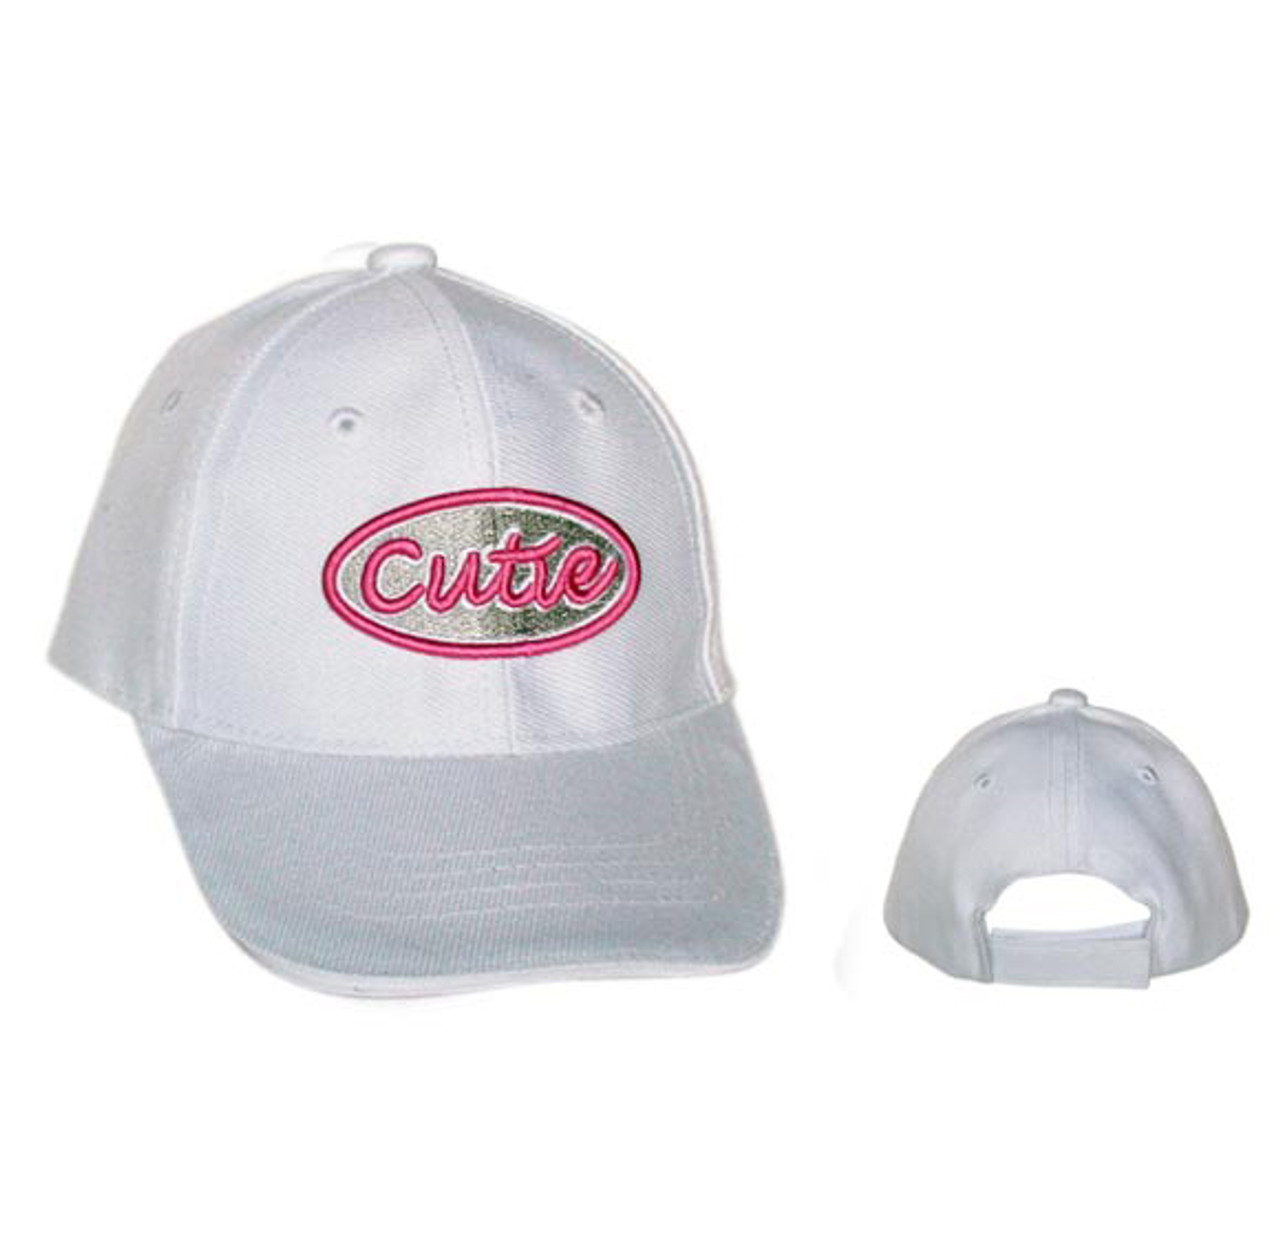 "Wholesale Kids Infant Sized Baseball Cap ""Cutie"" C1054 (1 pc.)"